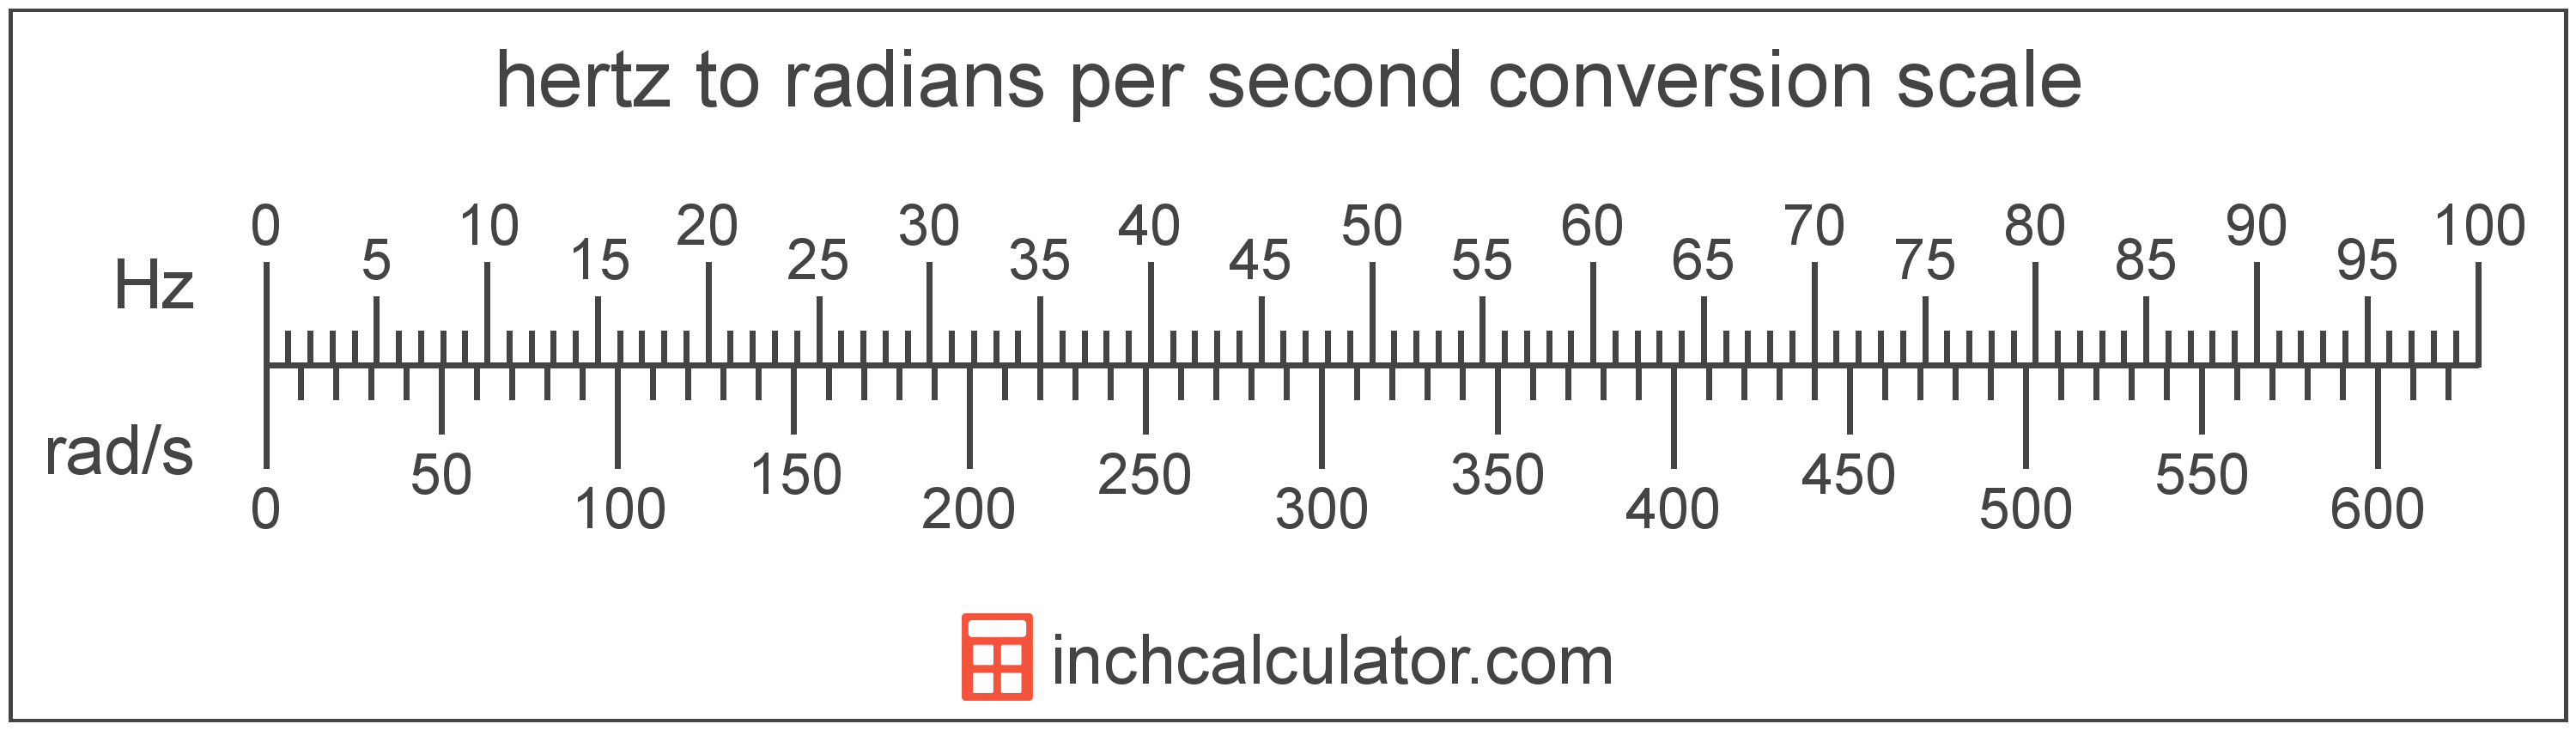 conversion scale showing hertz and equivalent radians per second frequency values